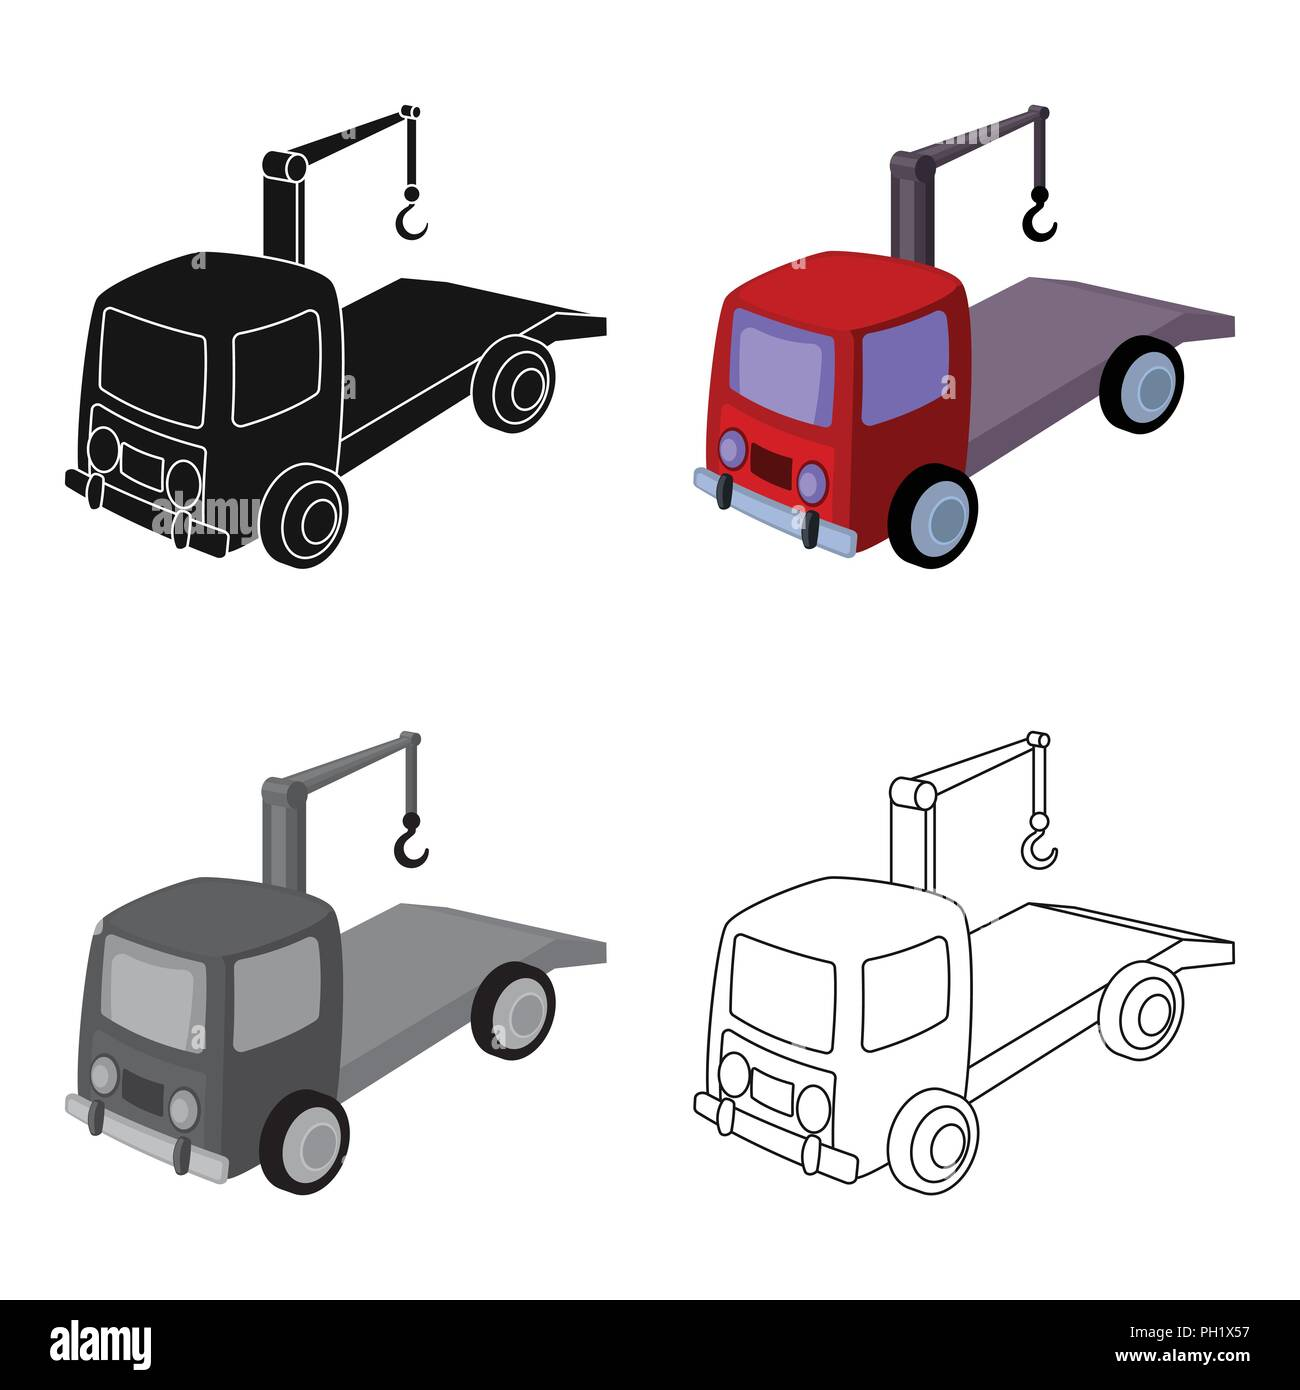 Tow Truck Icon In Cartoon Design Isolated On White Background